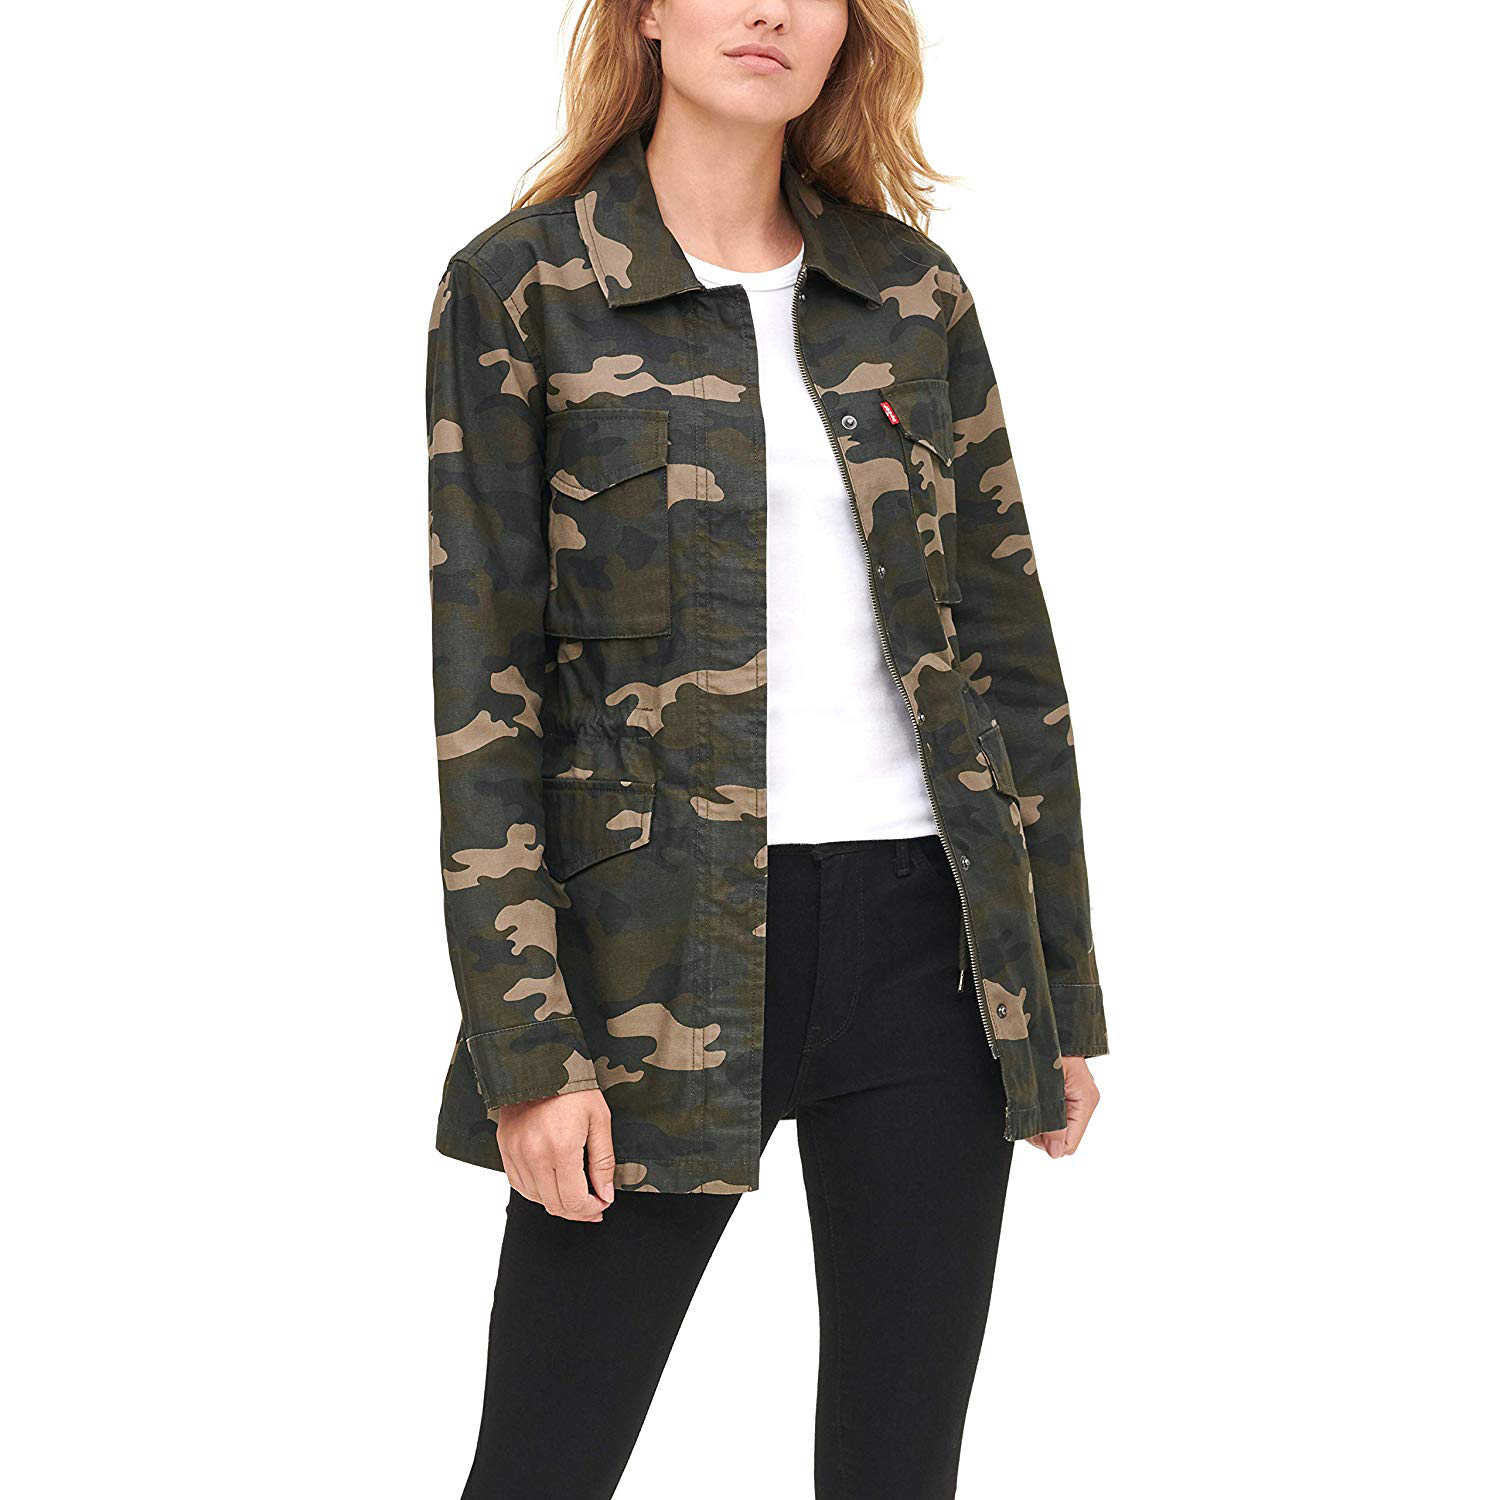 Levi's Women's Cotton Midlength Military Jacket